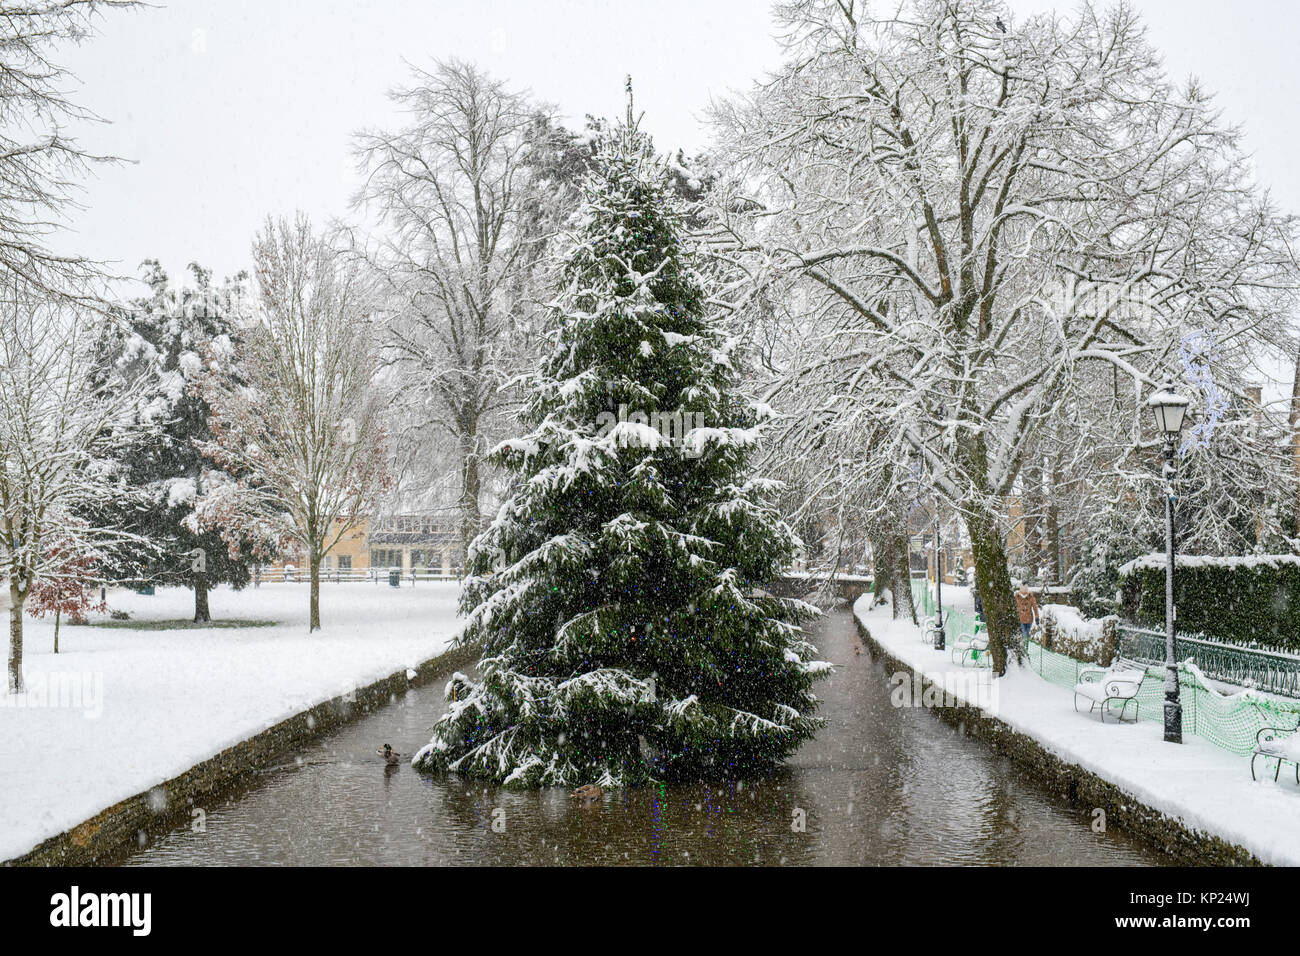 England Christmas Snow.Falling Snow Covering The Christmas Tree In Bourton On The